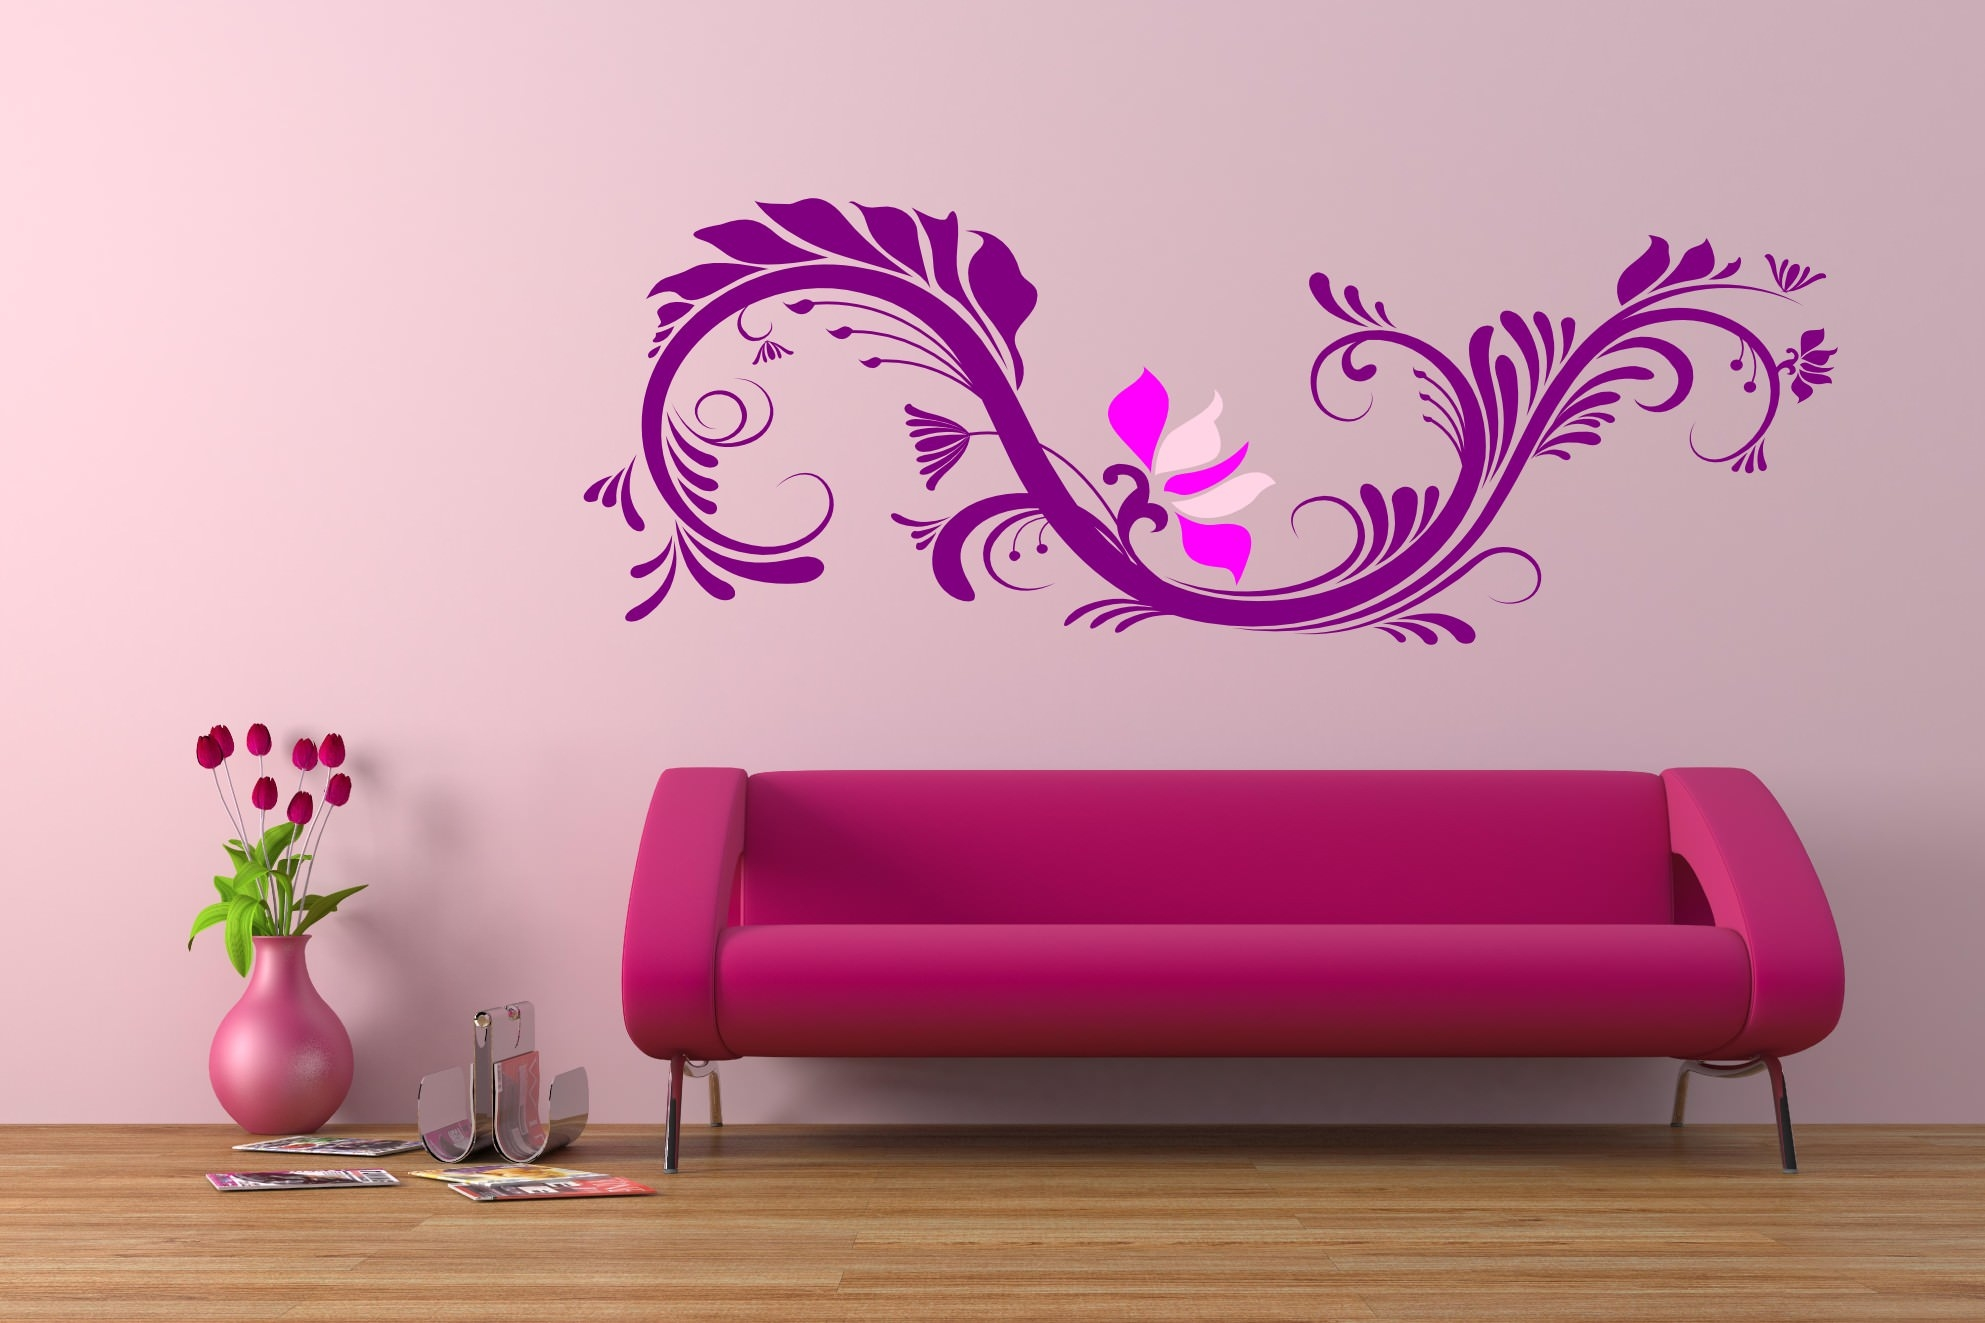 Interior Wall Painting Designs simple pink bedroom wall paint designs with glass windows Modern Stylish Interior Wall Painting Design